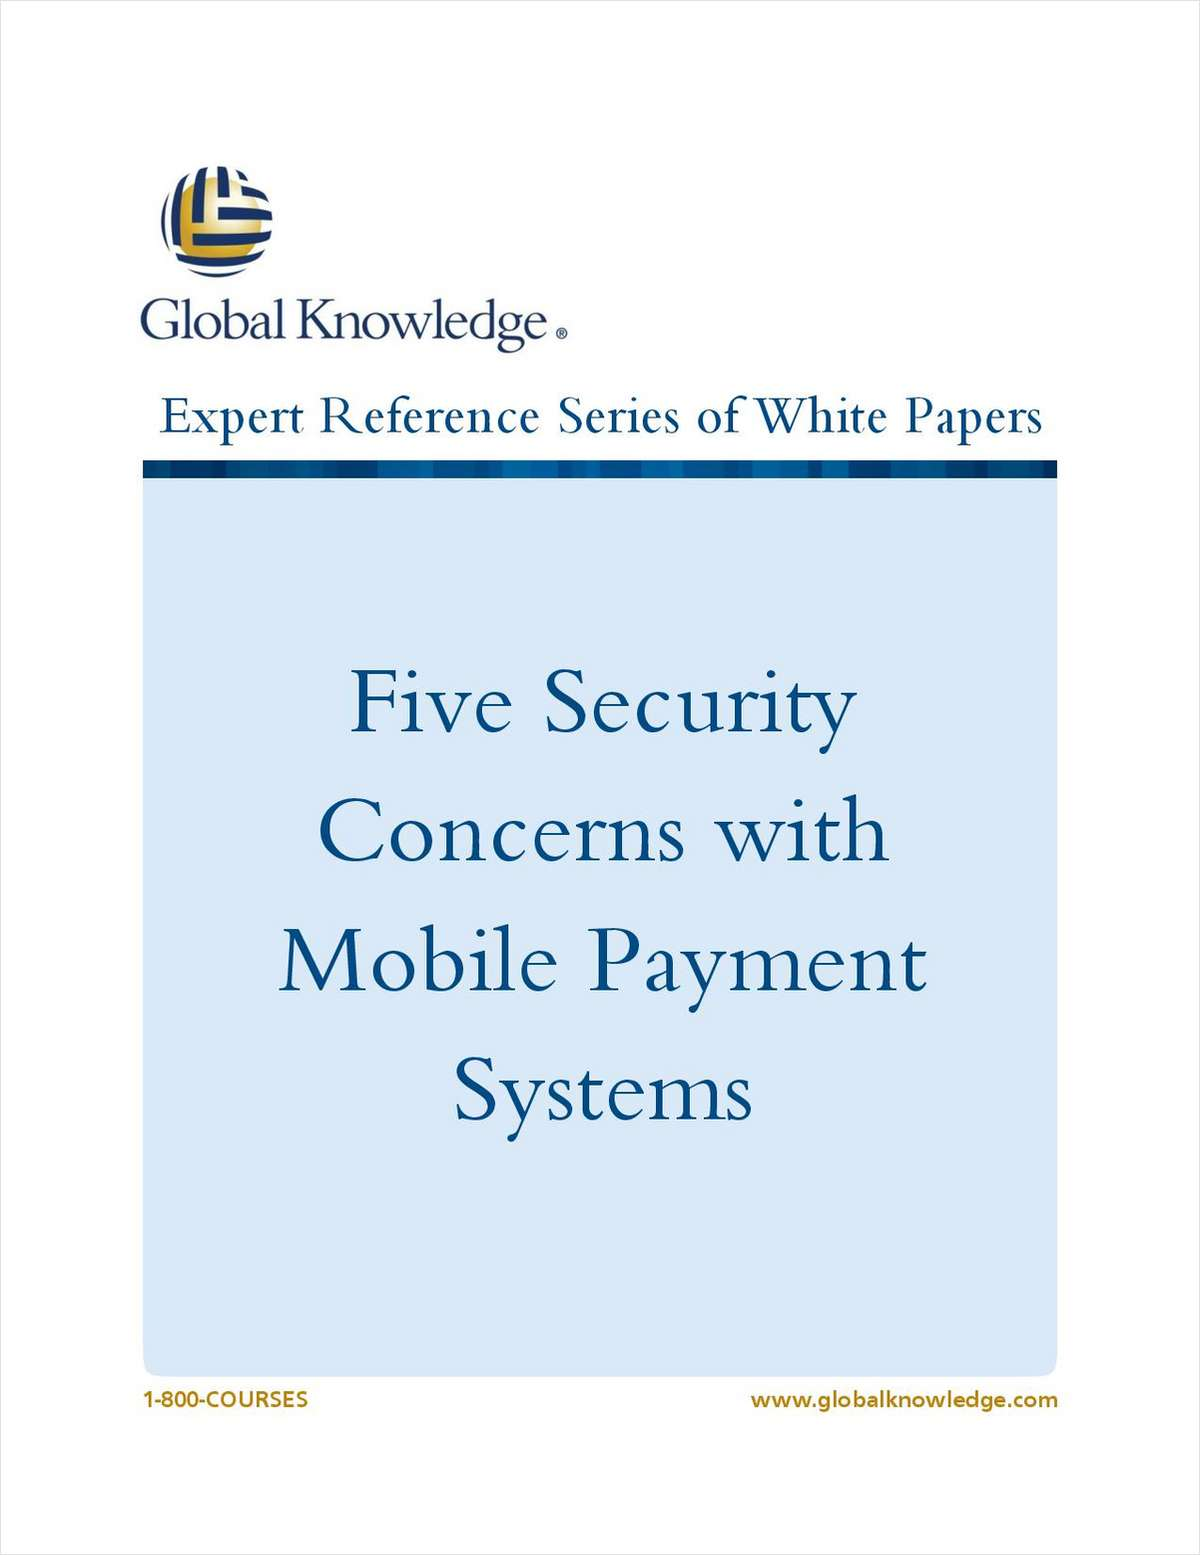 Five Security Concerns with Mobile Payment Systems